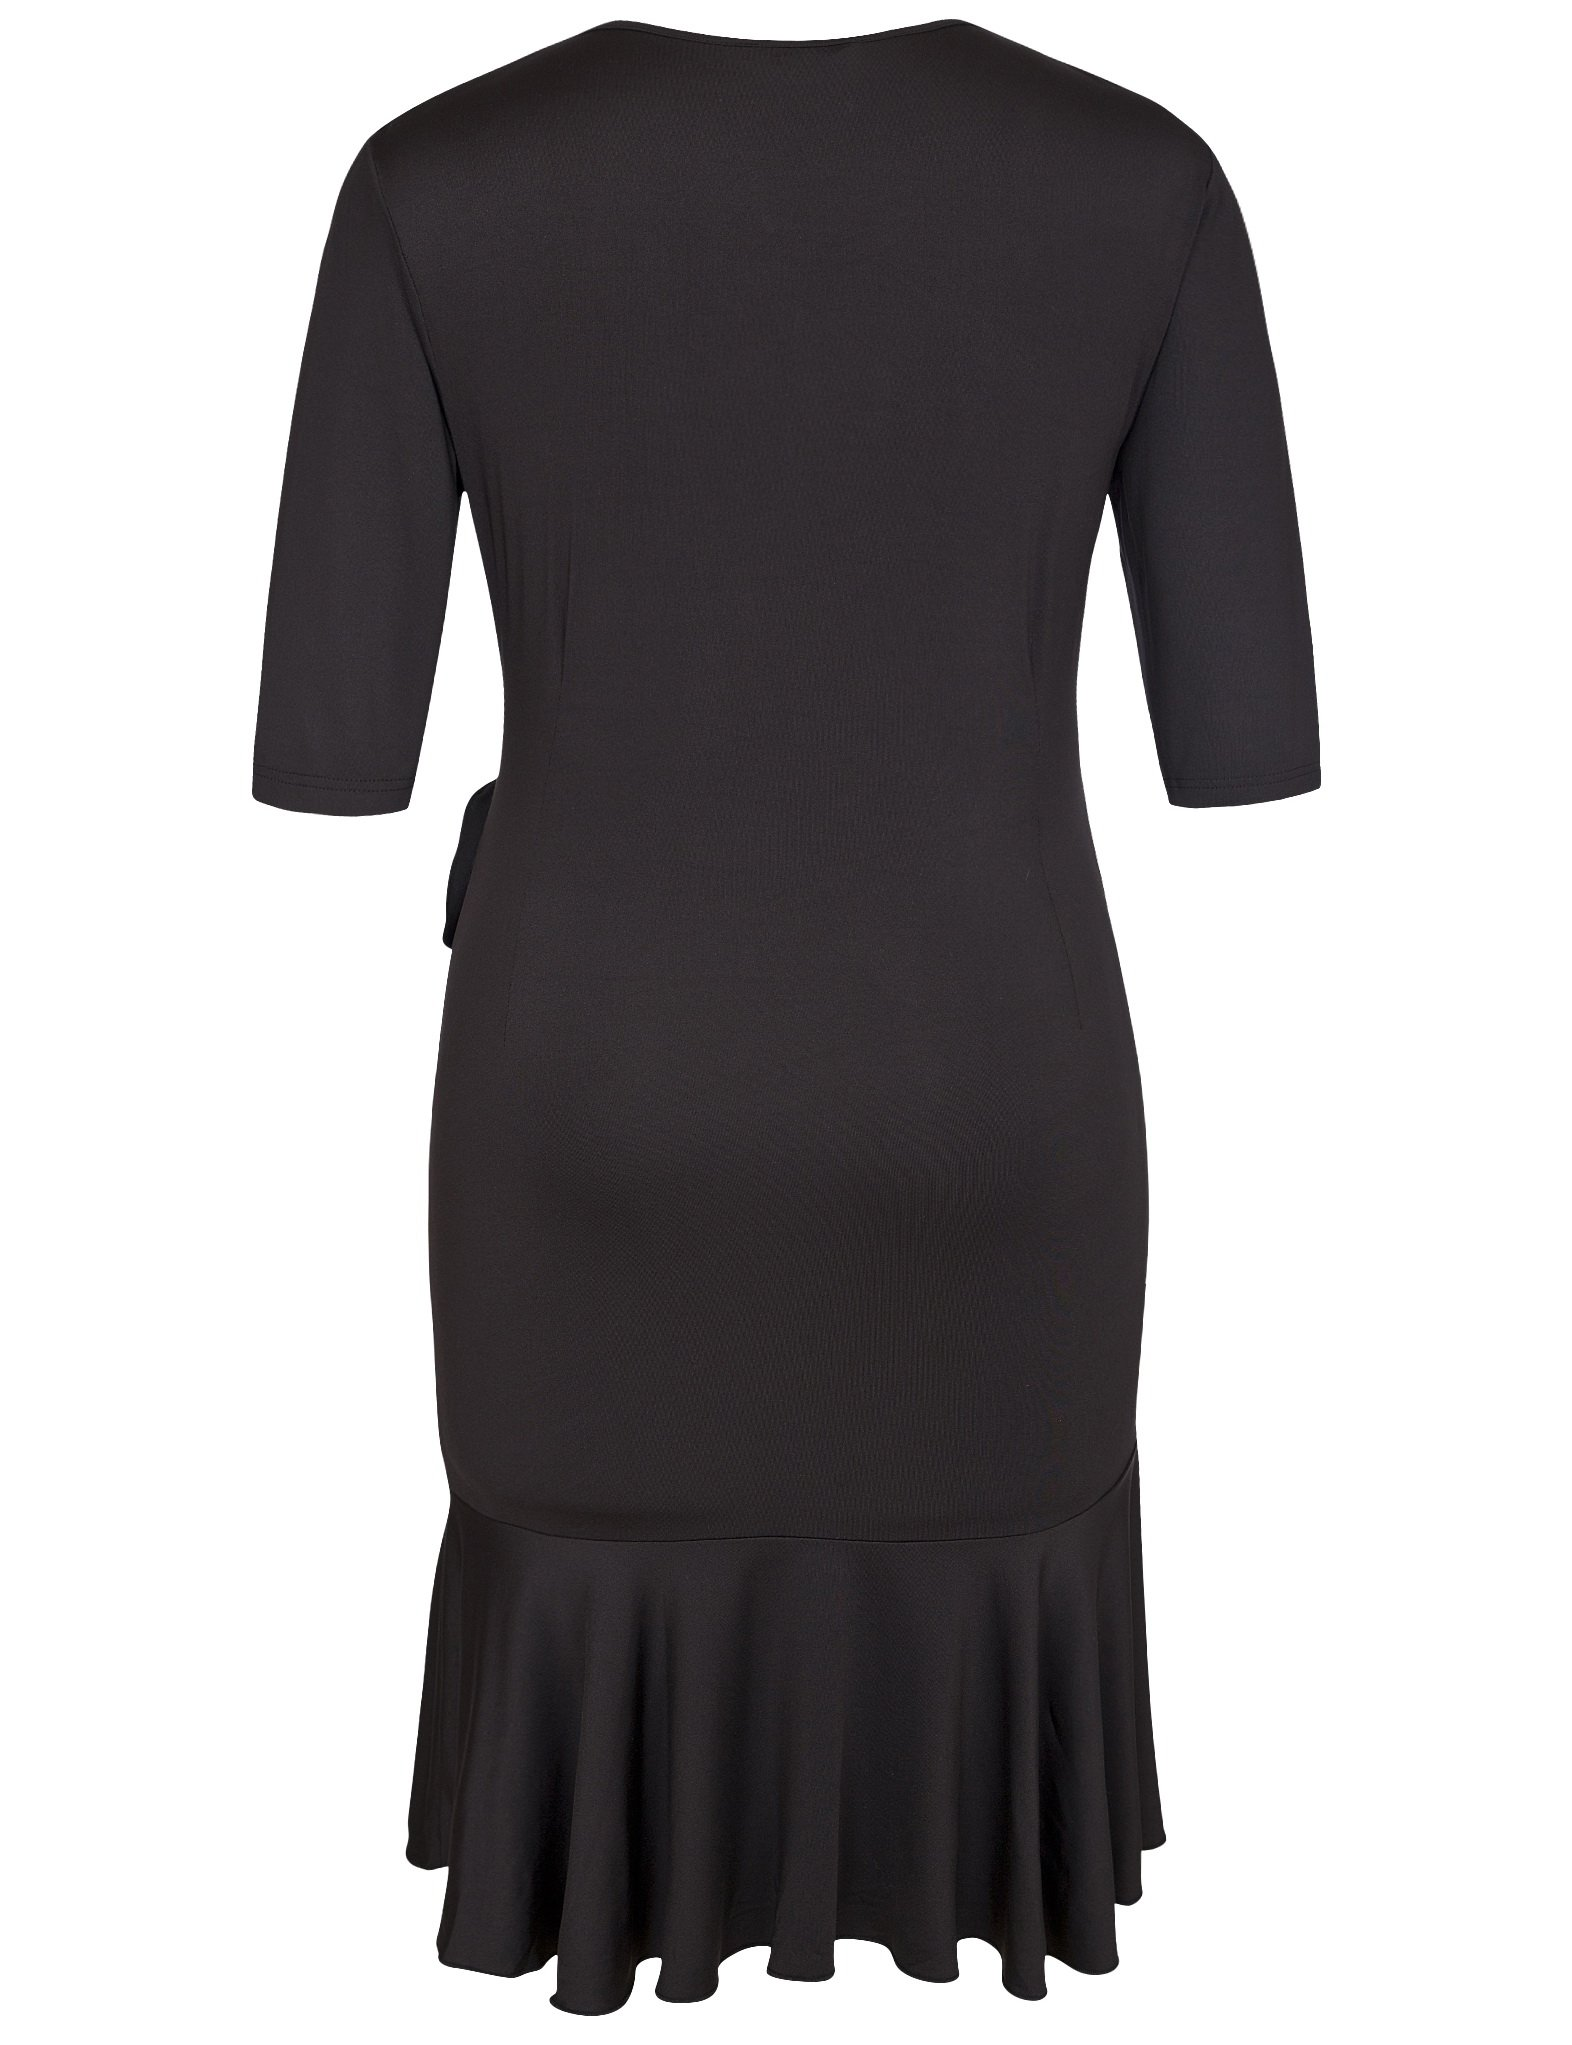 Chicwe Women's Plus Size Whimsy Wrap Solid Dress - Knee Length Casual Party Cocktail Dress Black 1X by Chicwe (Image #2)